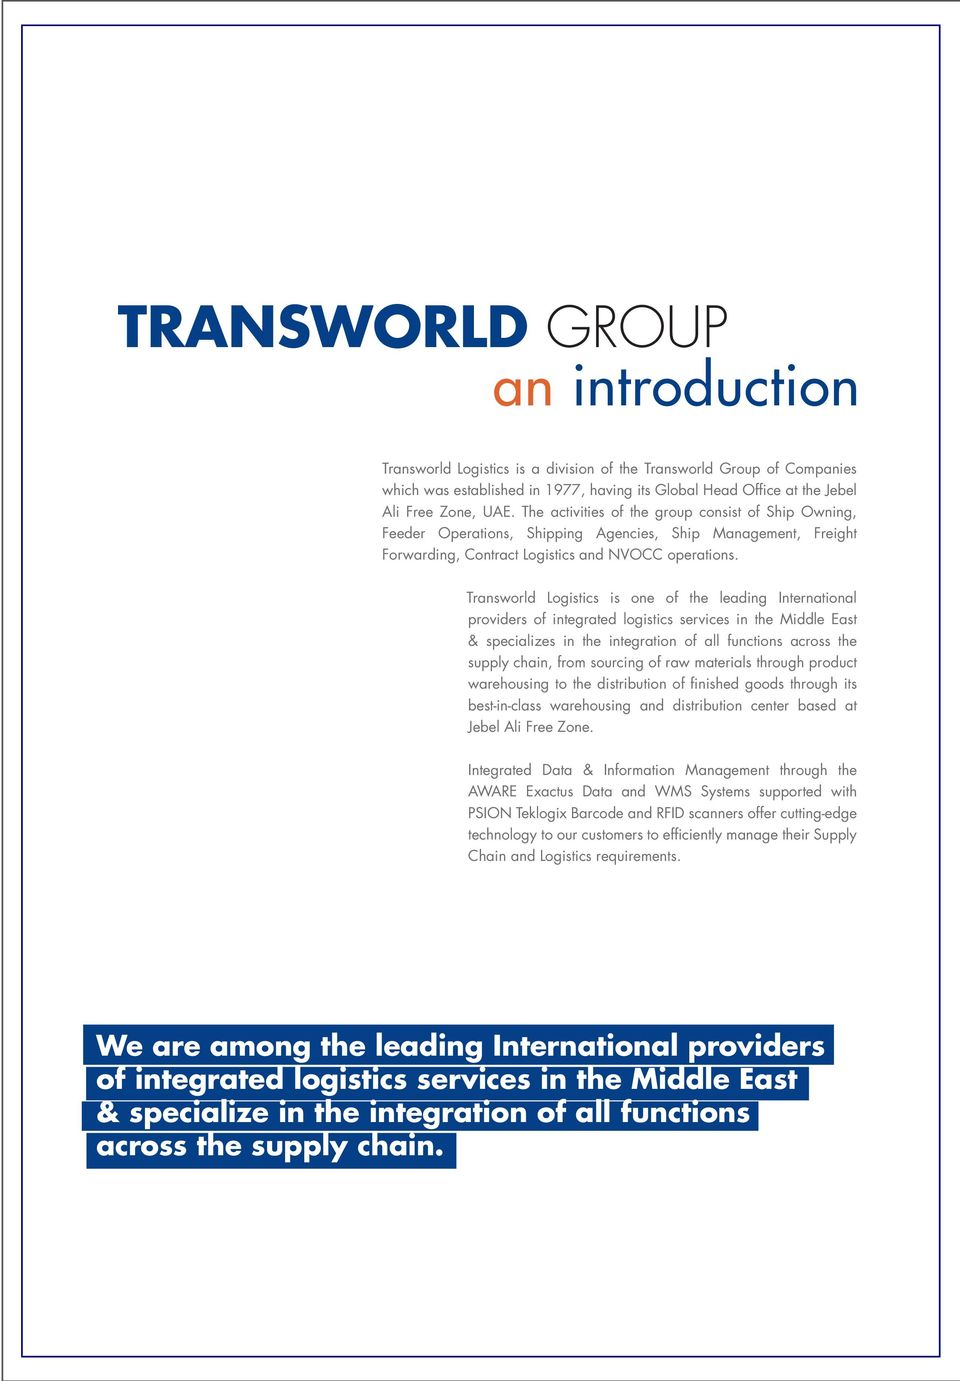 Transworld Logistics is one of the leading International providers of integrated logistics services in the Middle East & specializes in the integration of all functions across the supply chain, from